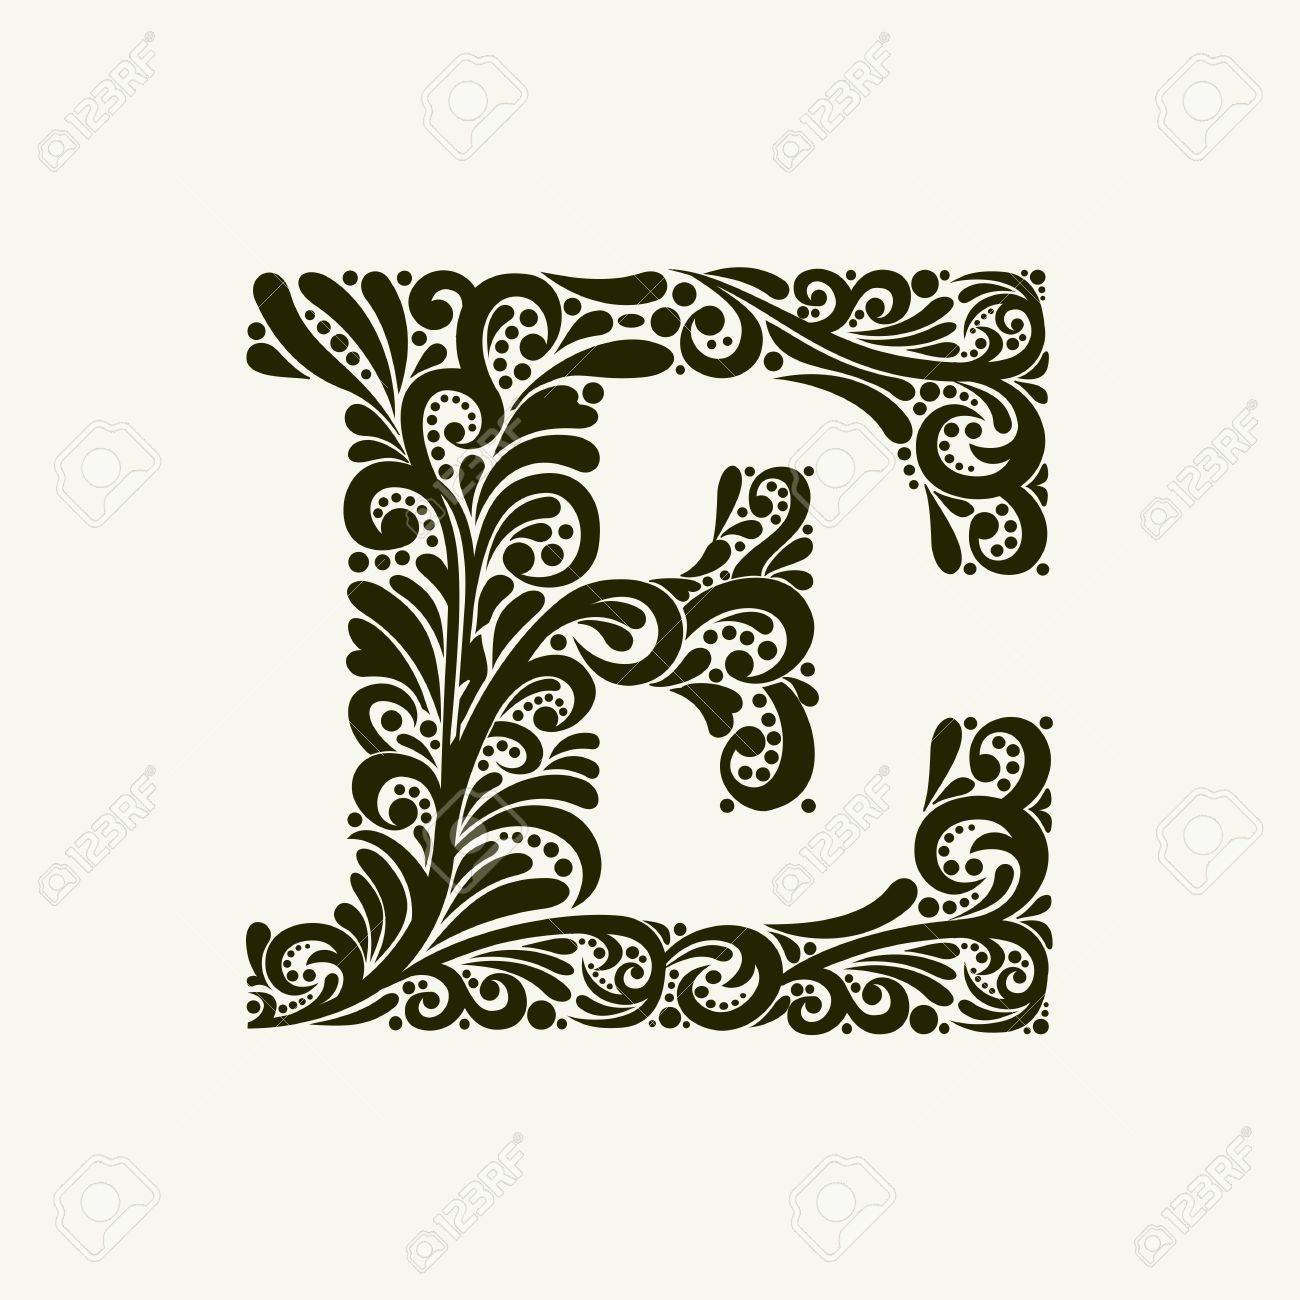 Elegant Capital Letter E In The Style Of Baroque To Use Monograms Logos